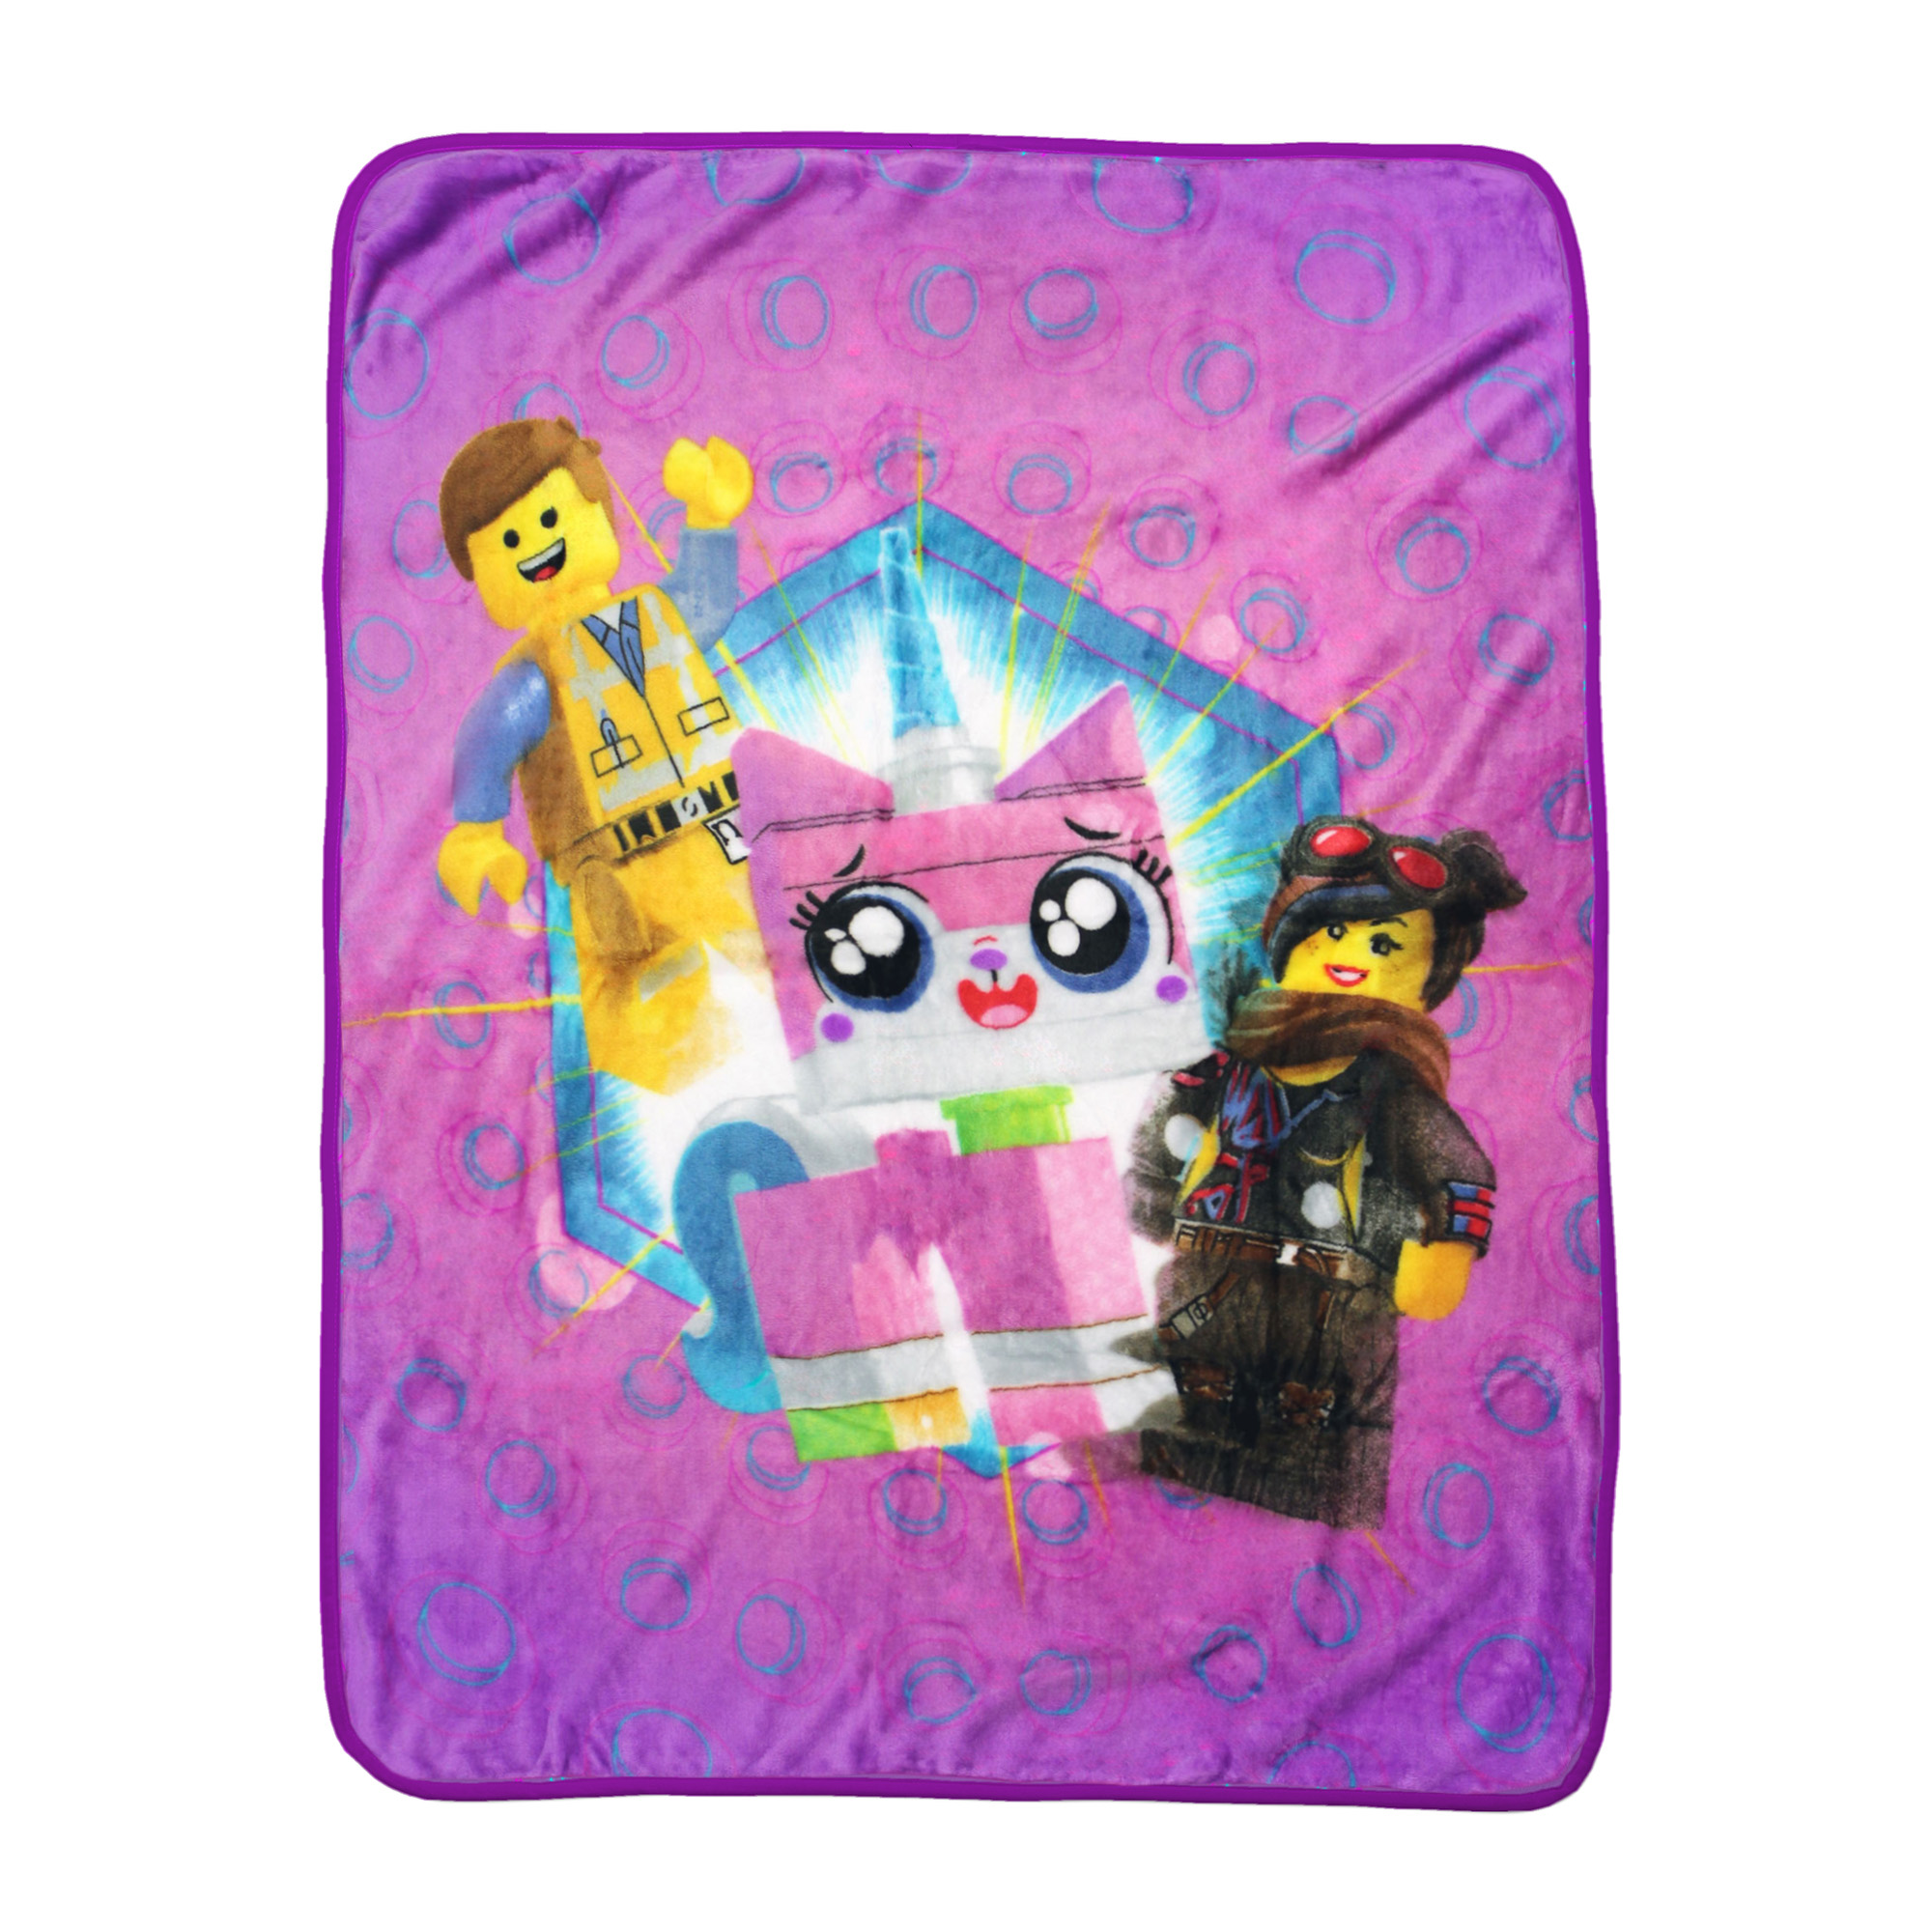 Lego Movie 2 Kitty Mania Throw, 1 Each